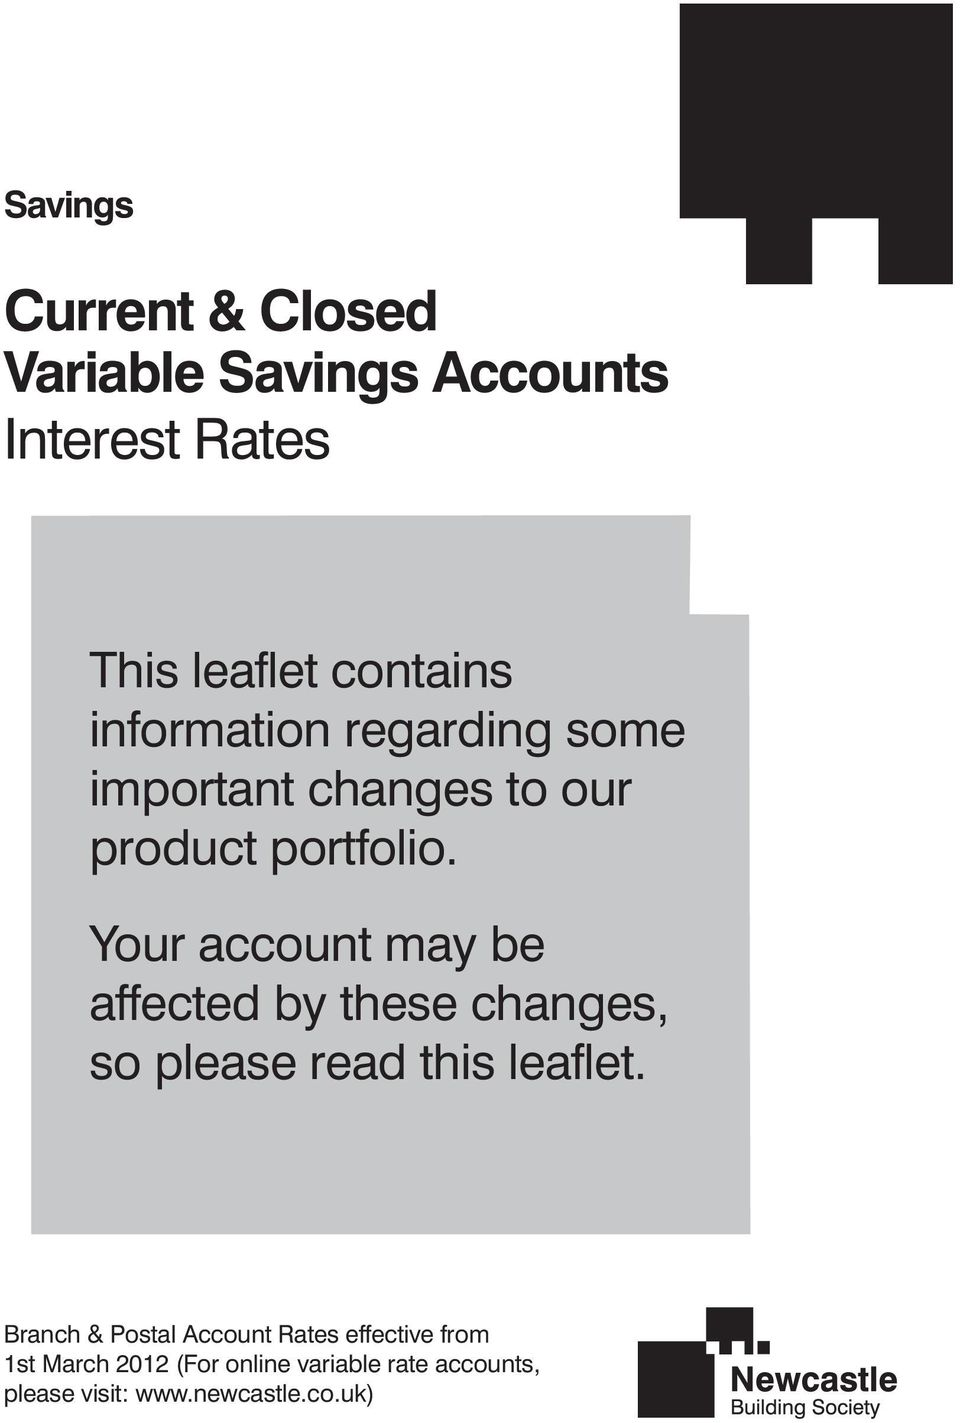 Your account may be affected by these changes, so please read this leaflet.